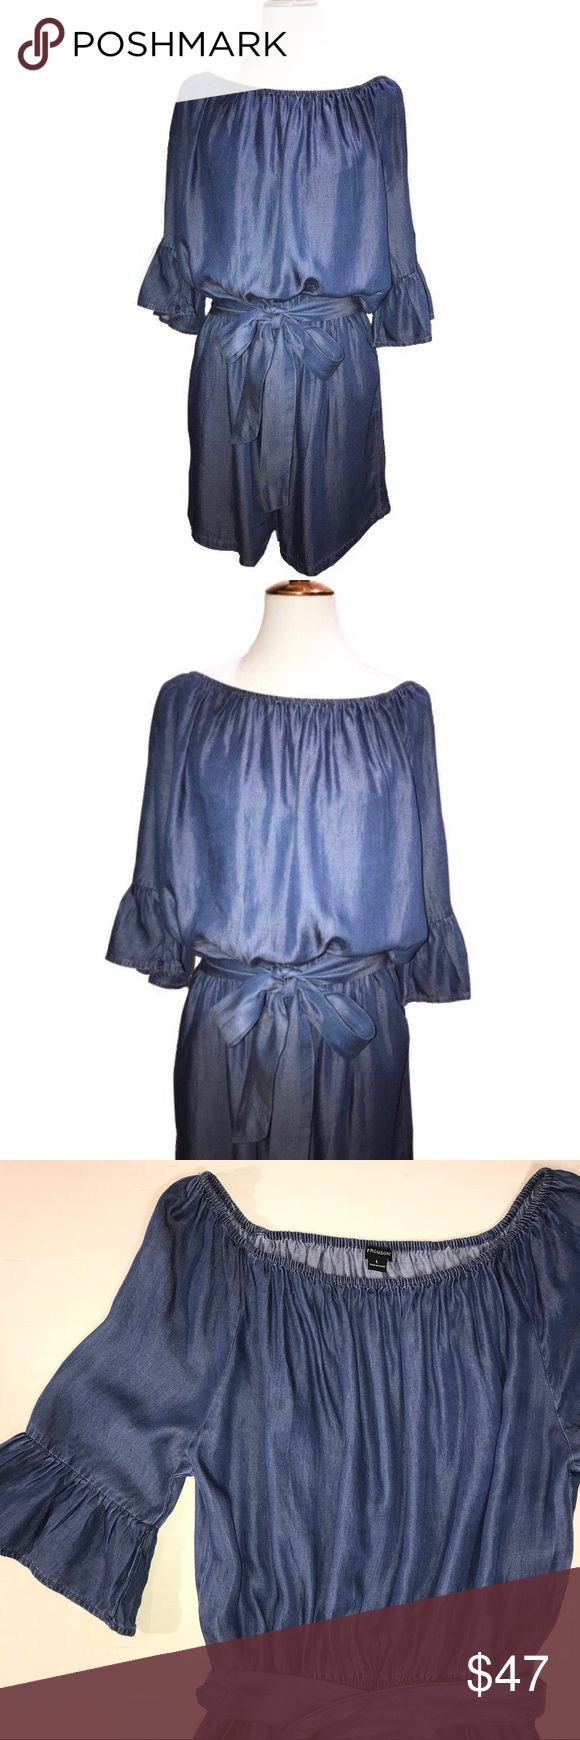 I 🖤 Ronson Blue Faux Jean Romper I 🖤 Ronson shorts romper. Faux jean look, soft and smooth fabric, blue with a slight shimmery hue. Wide neckline, ruffled sleeves and a wide ribbon waist tie. Generous fitting and elastic waist gives this romper a very blousy fit. Great condition. Charlotte Ronson Pants Jumpsuits & Rompers